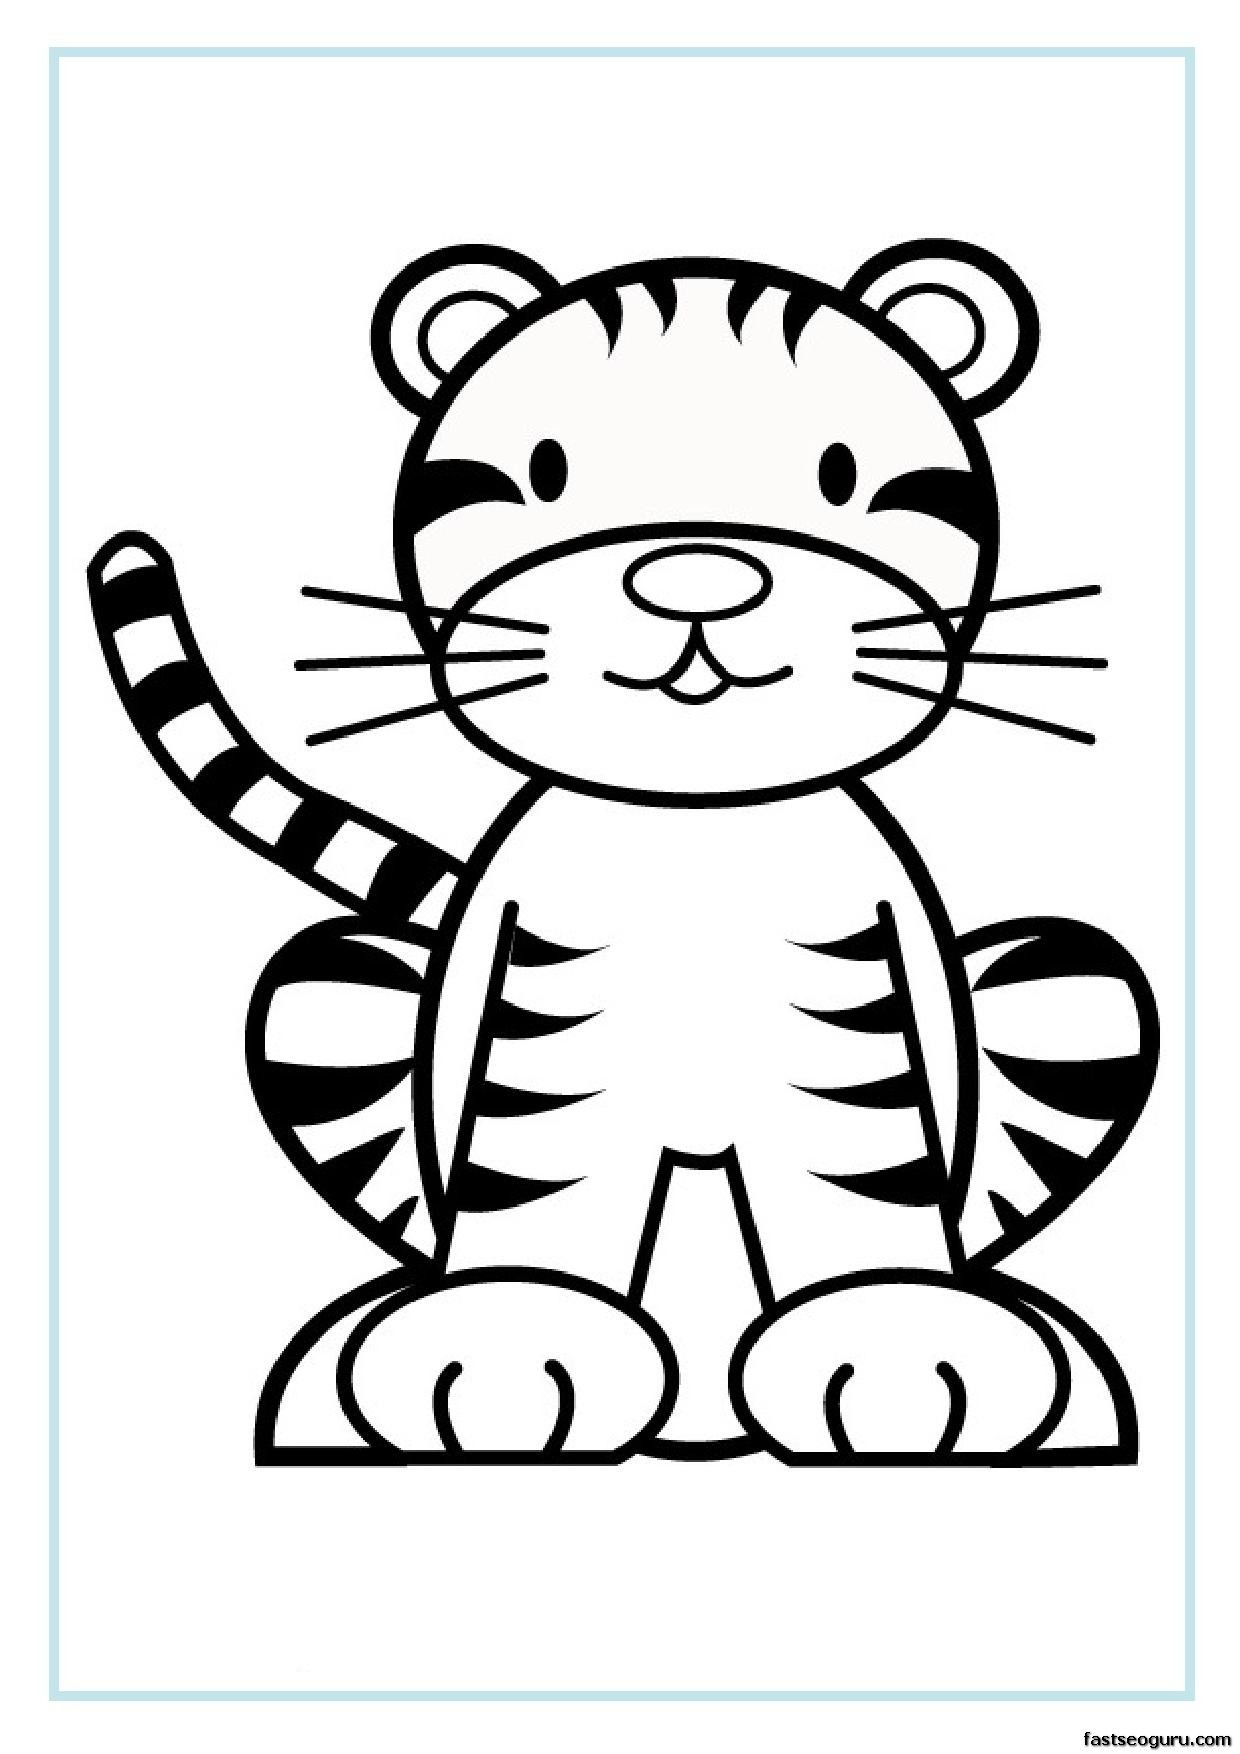 Free coloring pages tiger - Baby Tiger Coloring Pages For Free Printable Coloring Page Tiger